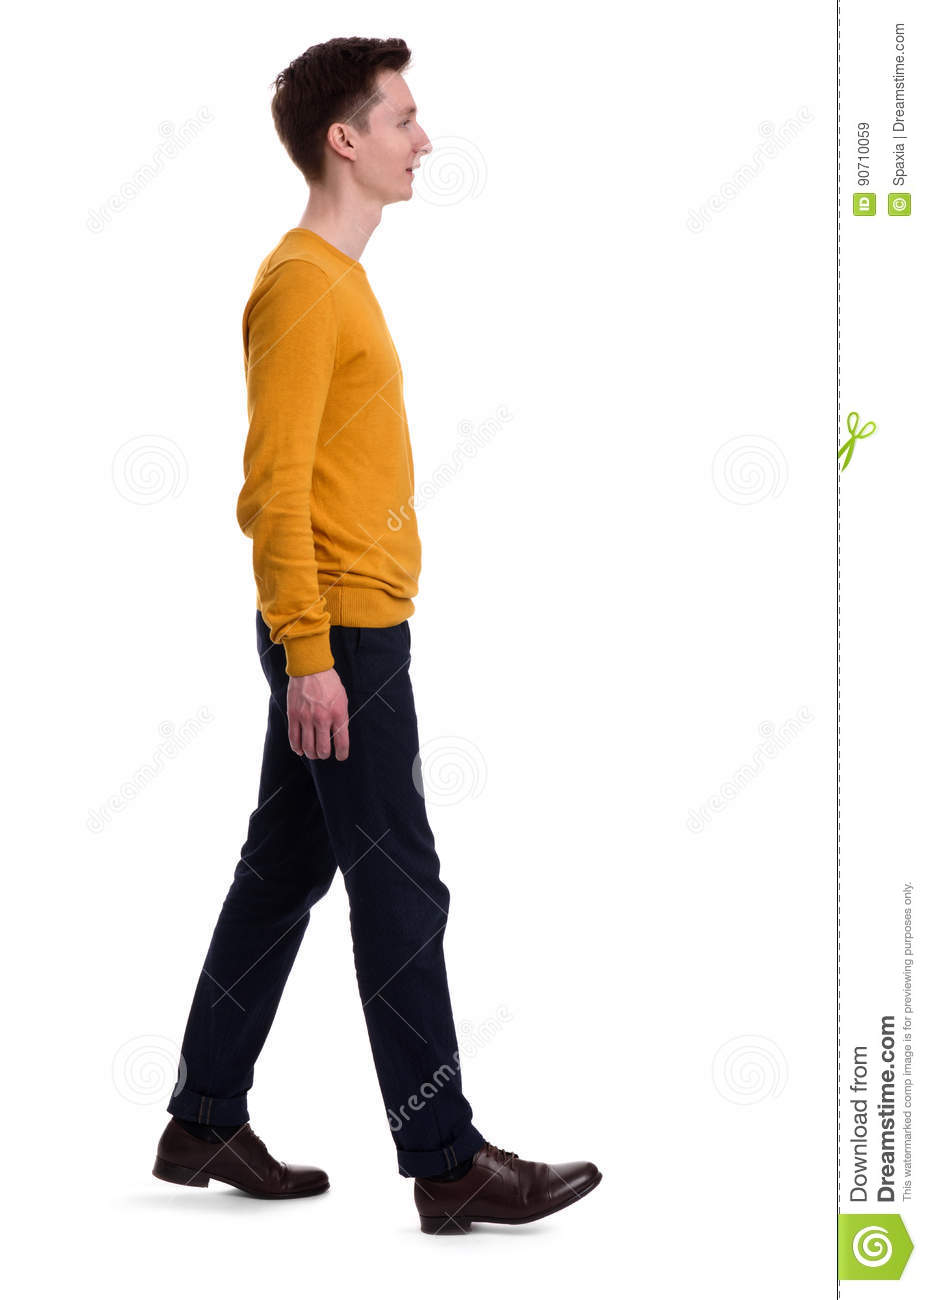 Full length portrait of a man walking. Isolated